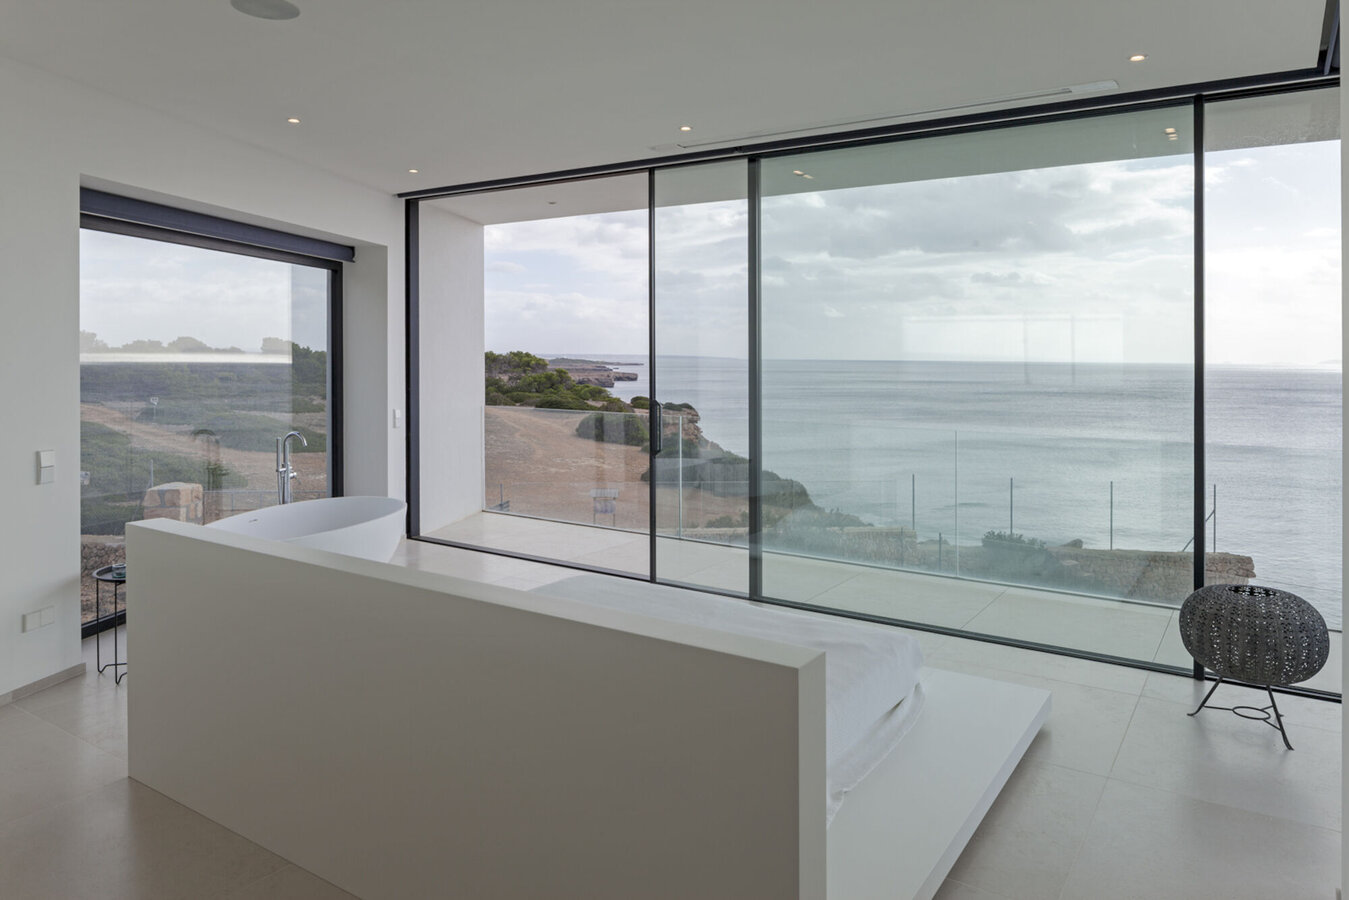 CP 68 Sliding Systems and Hi-Finity Sliding Systems - Villa El Mar located in Spain